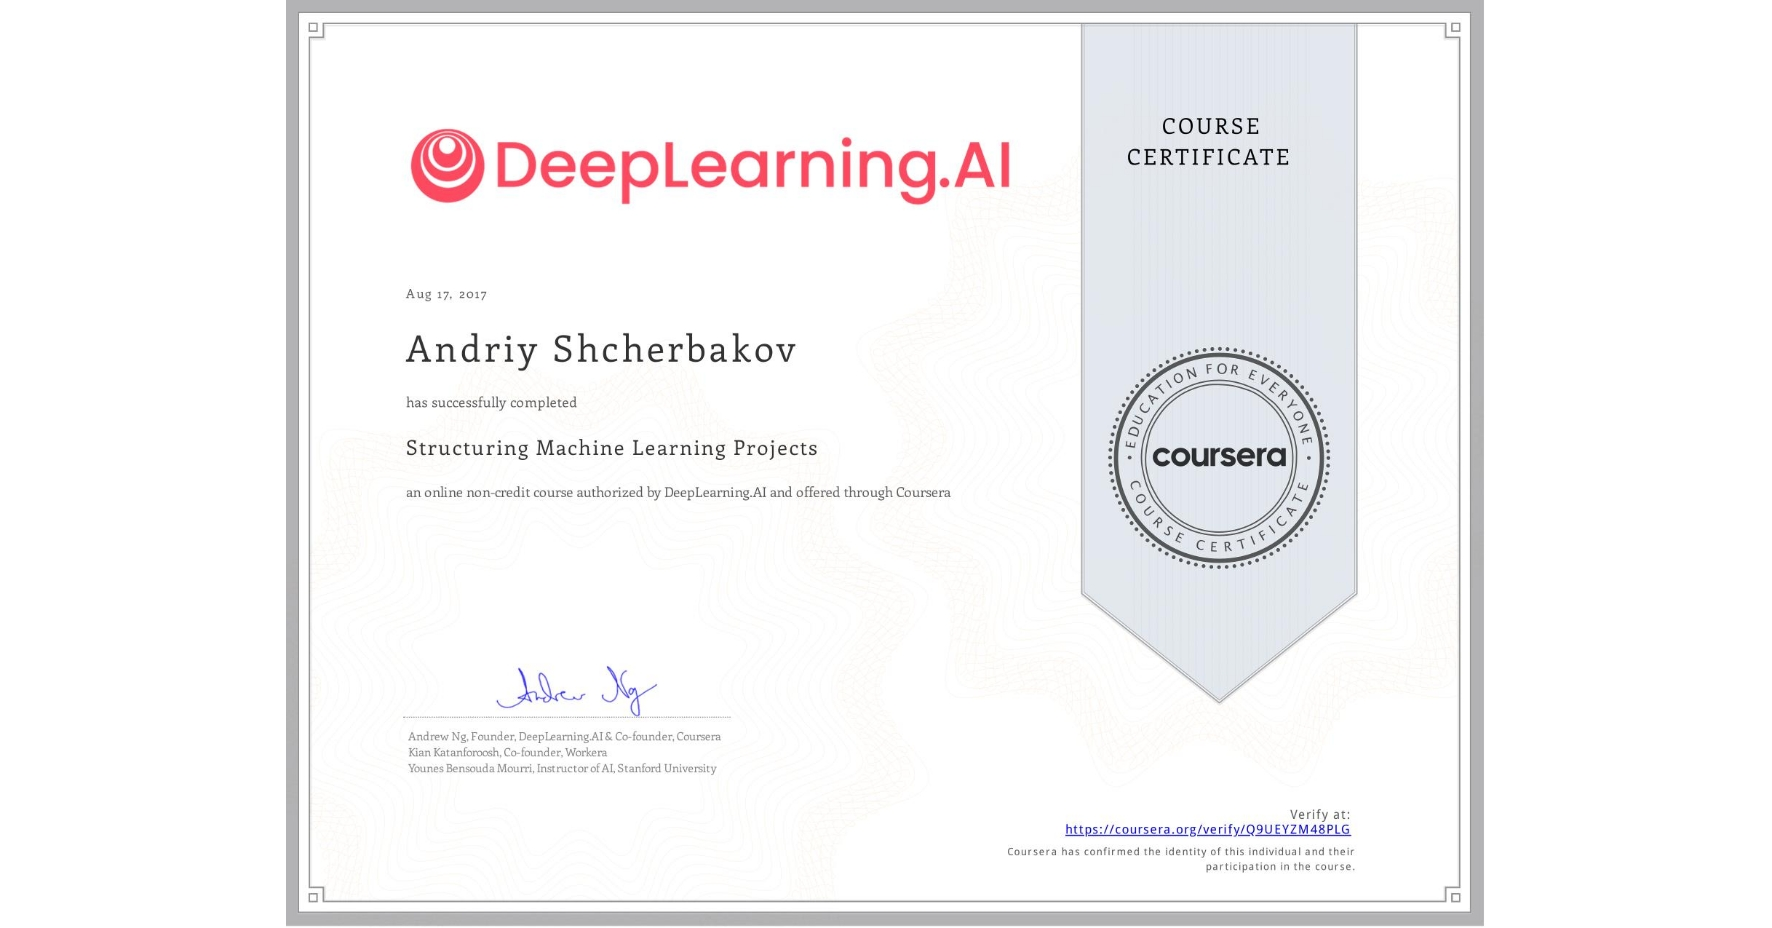 View certificate for Andriy Shcherbakov, Structuring Machine Learning Projects, an online non-credit course authorized by DeepLearning.AI and offered through Coursera